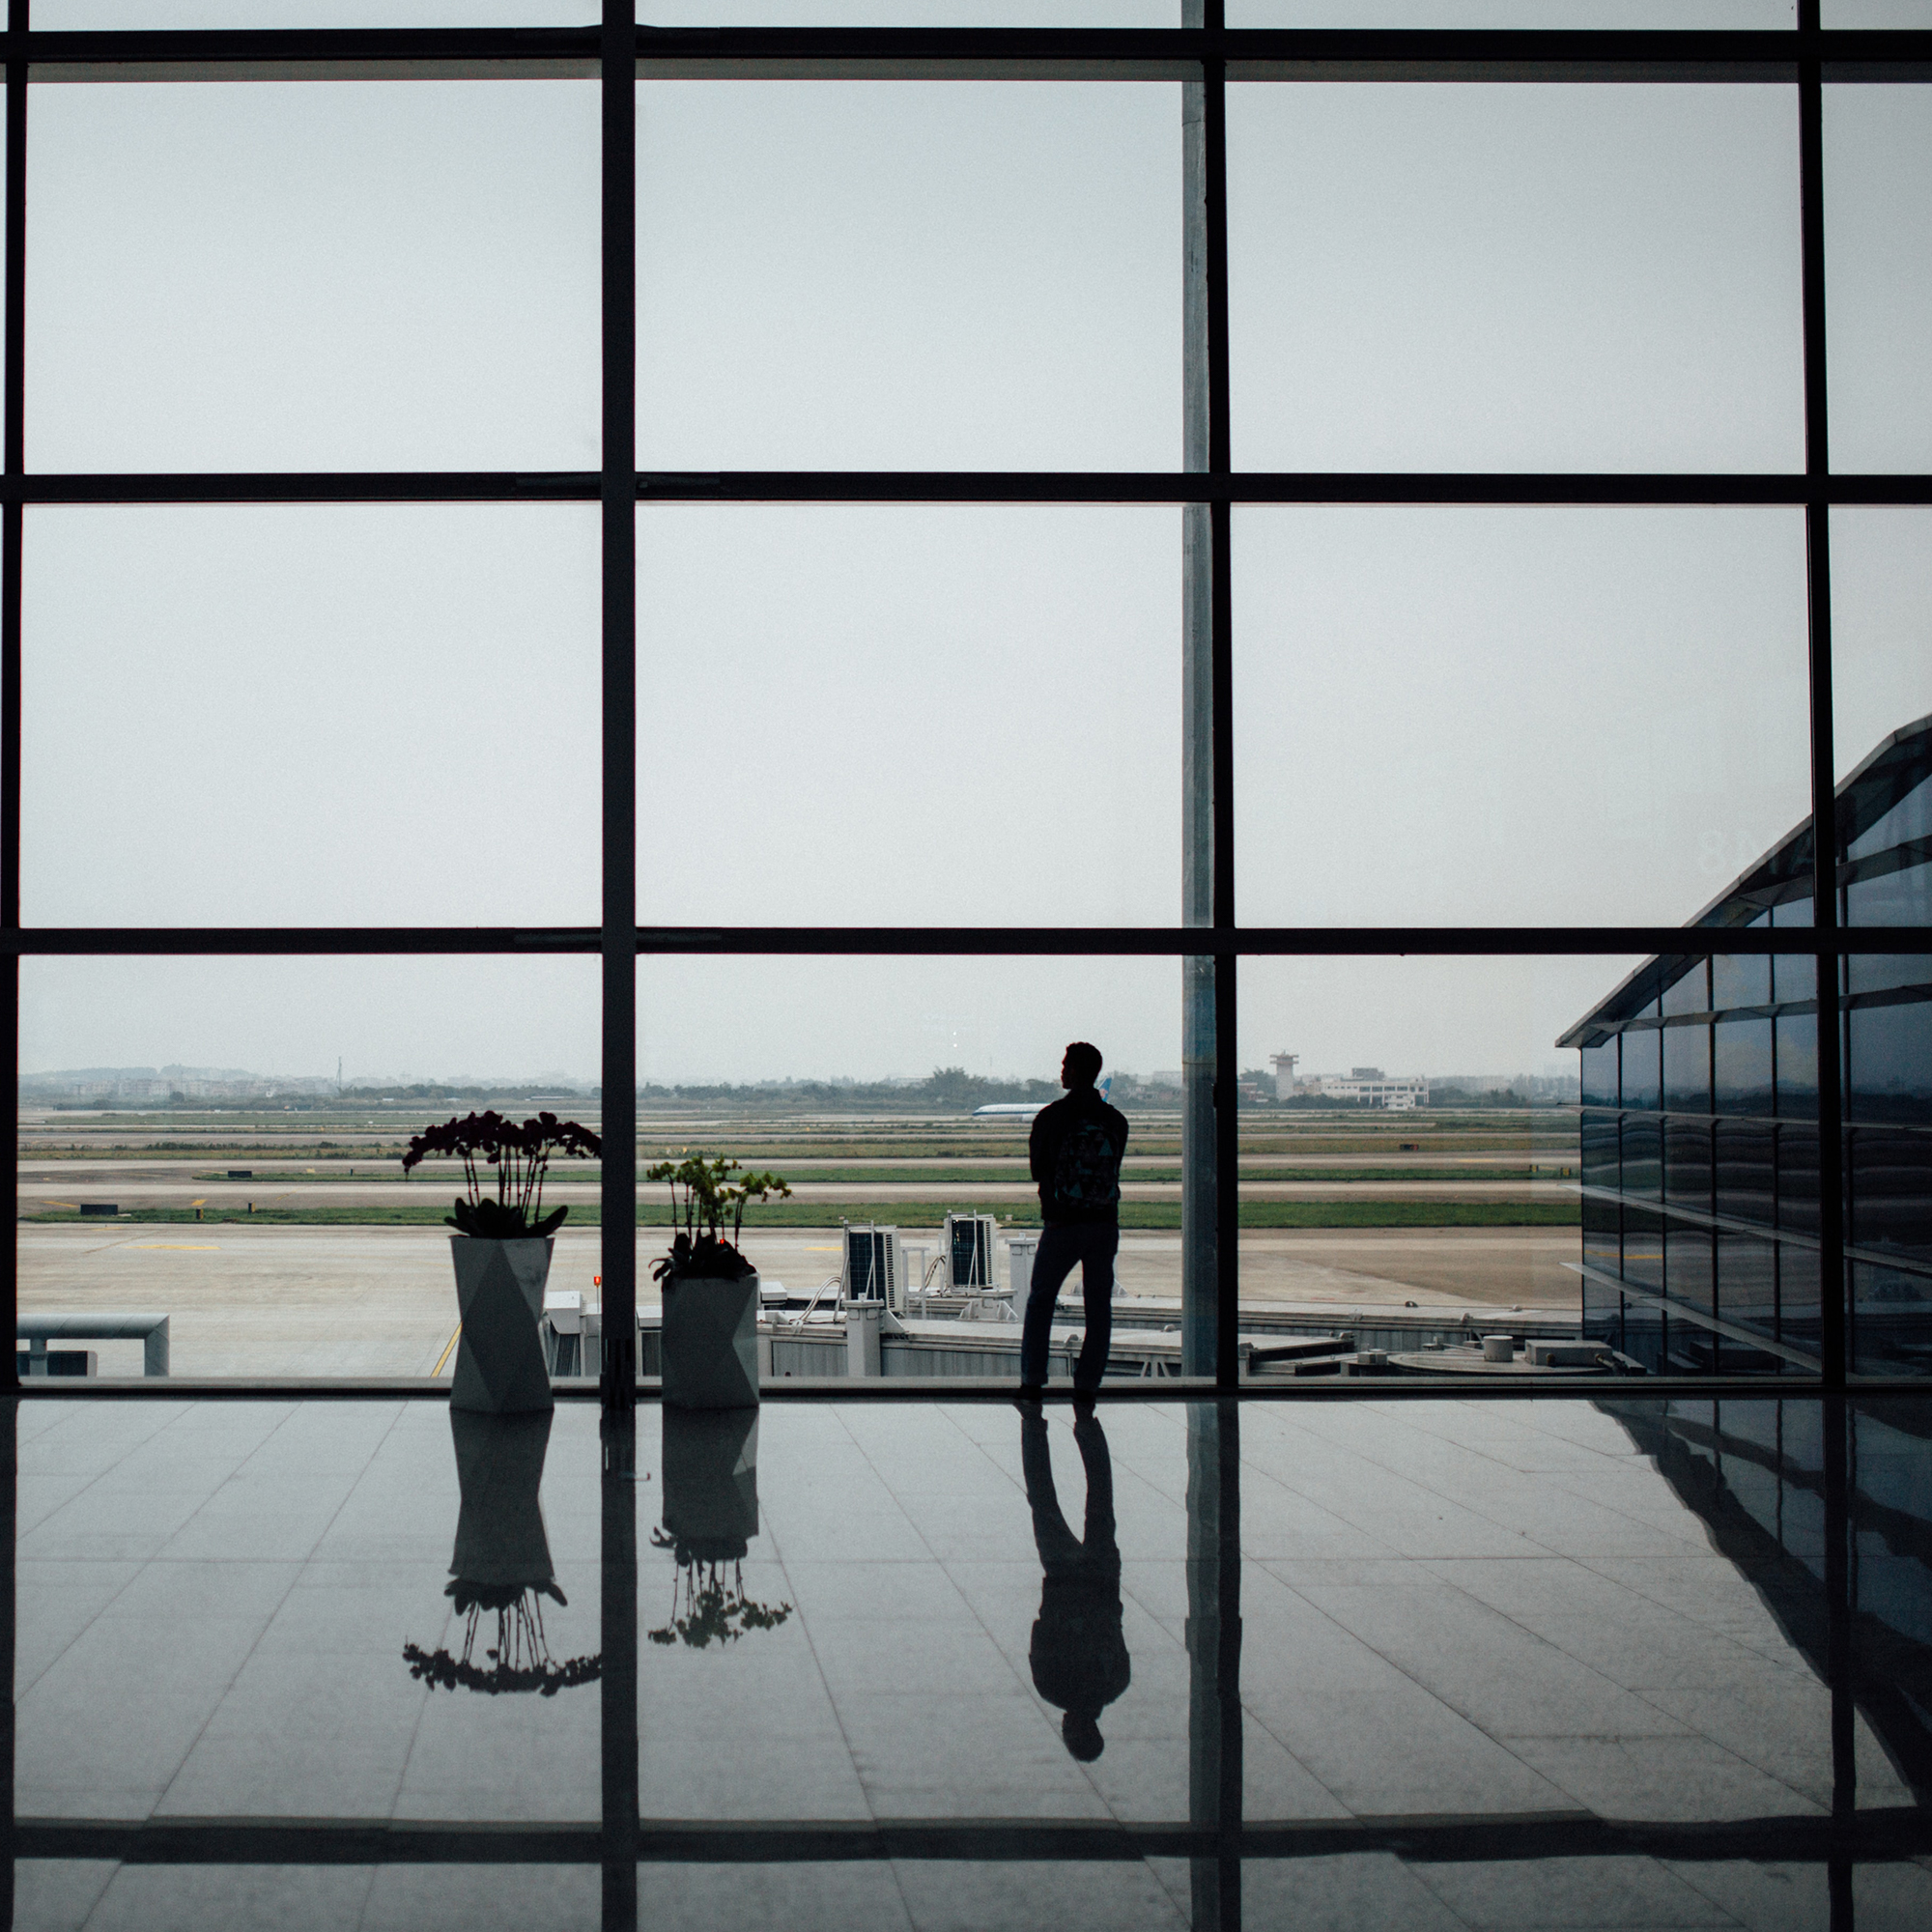 Photo of a person standing alone in front of large windows at an airport, waiting. Photo by Hanson Lu on Unsplash